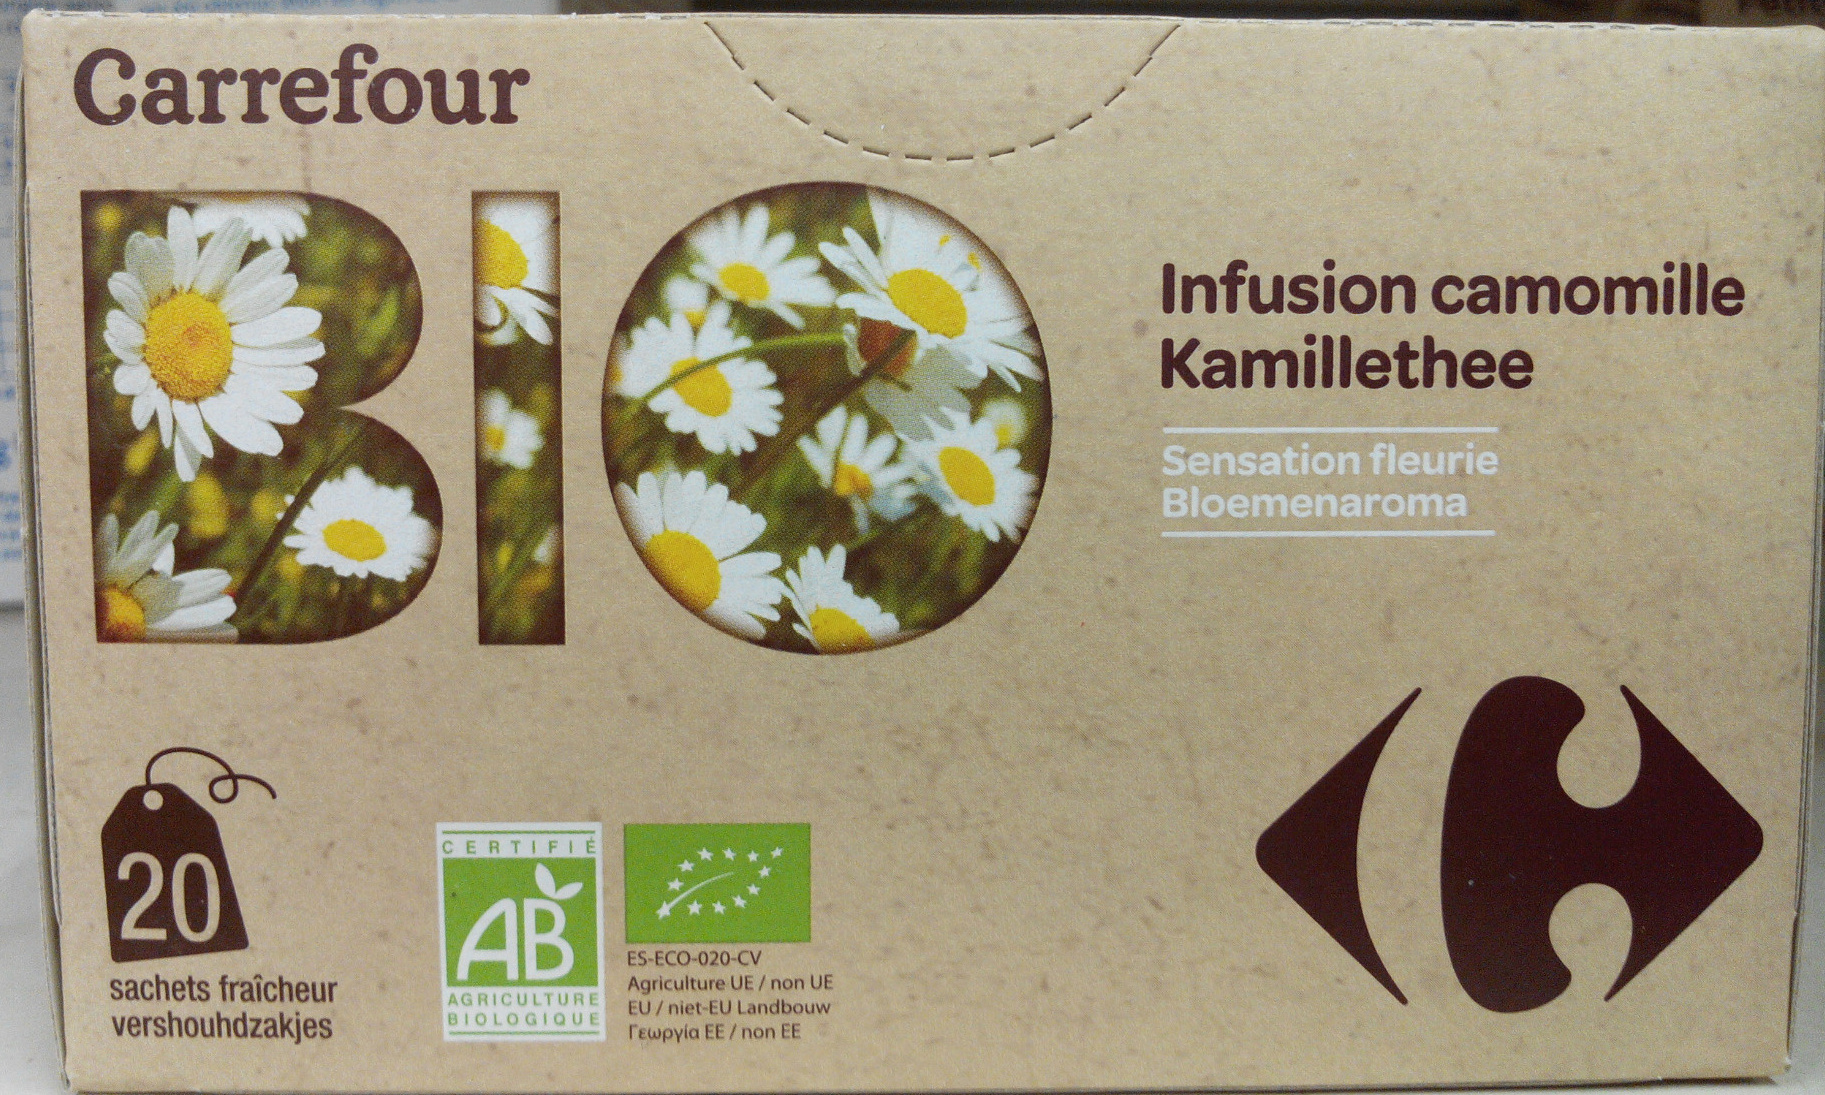 infusion camomille - carrefour bio